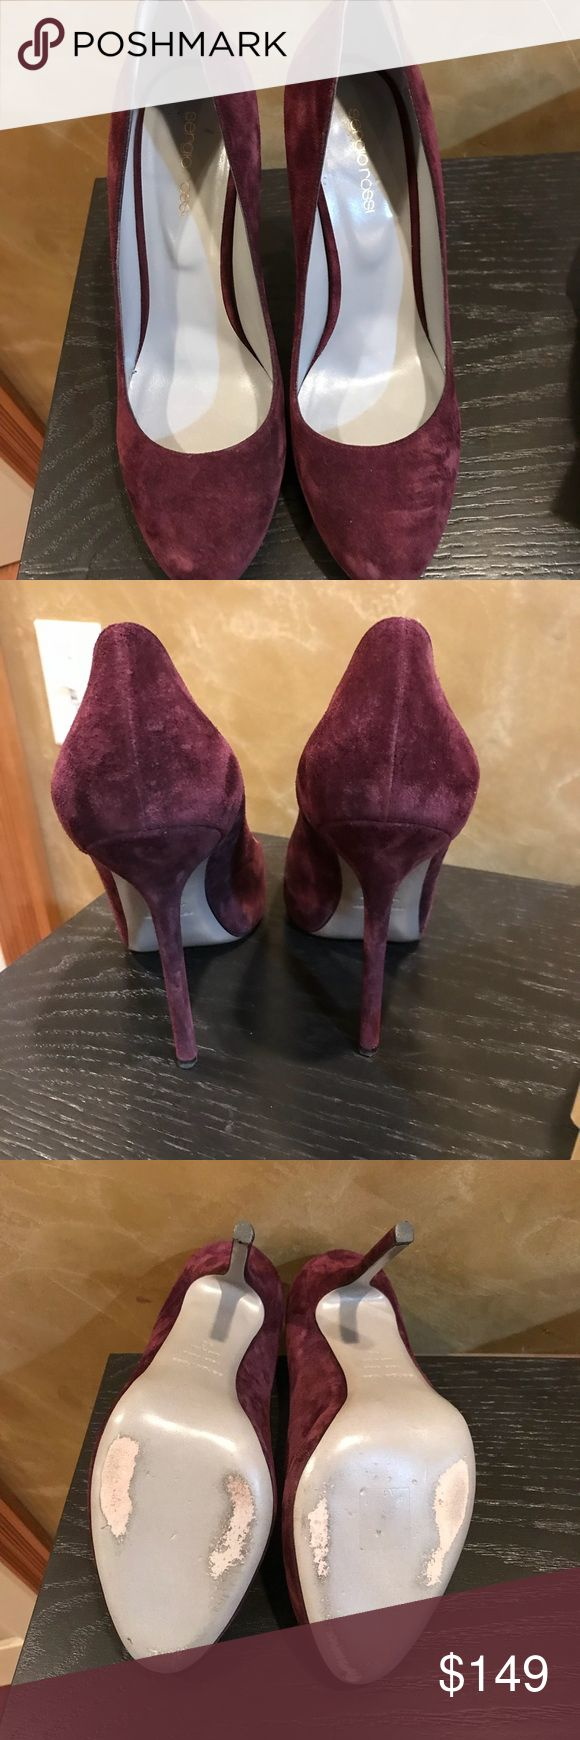 Sergio Rossi pumps. EUC. EUC Sergio Rossi pumps in Blood Red (burgundy/wine color). Please feel free to ask question. Sergio Rossi Shoes Heels